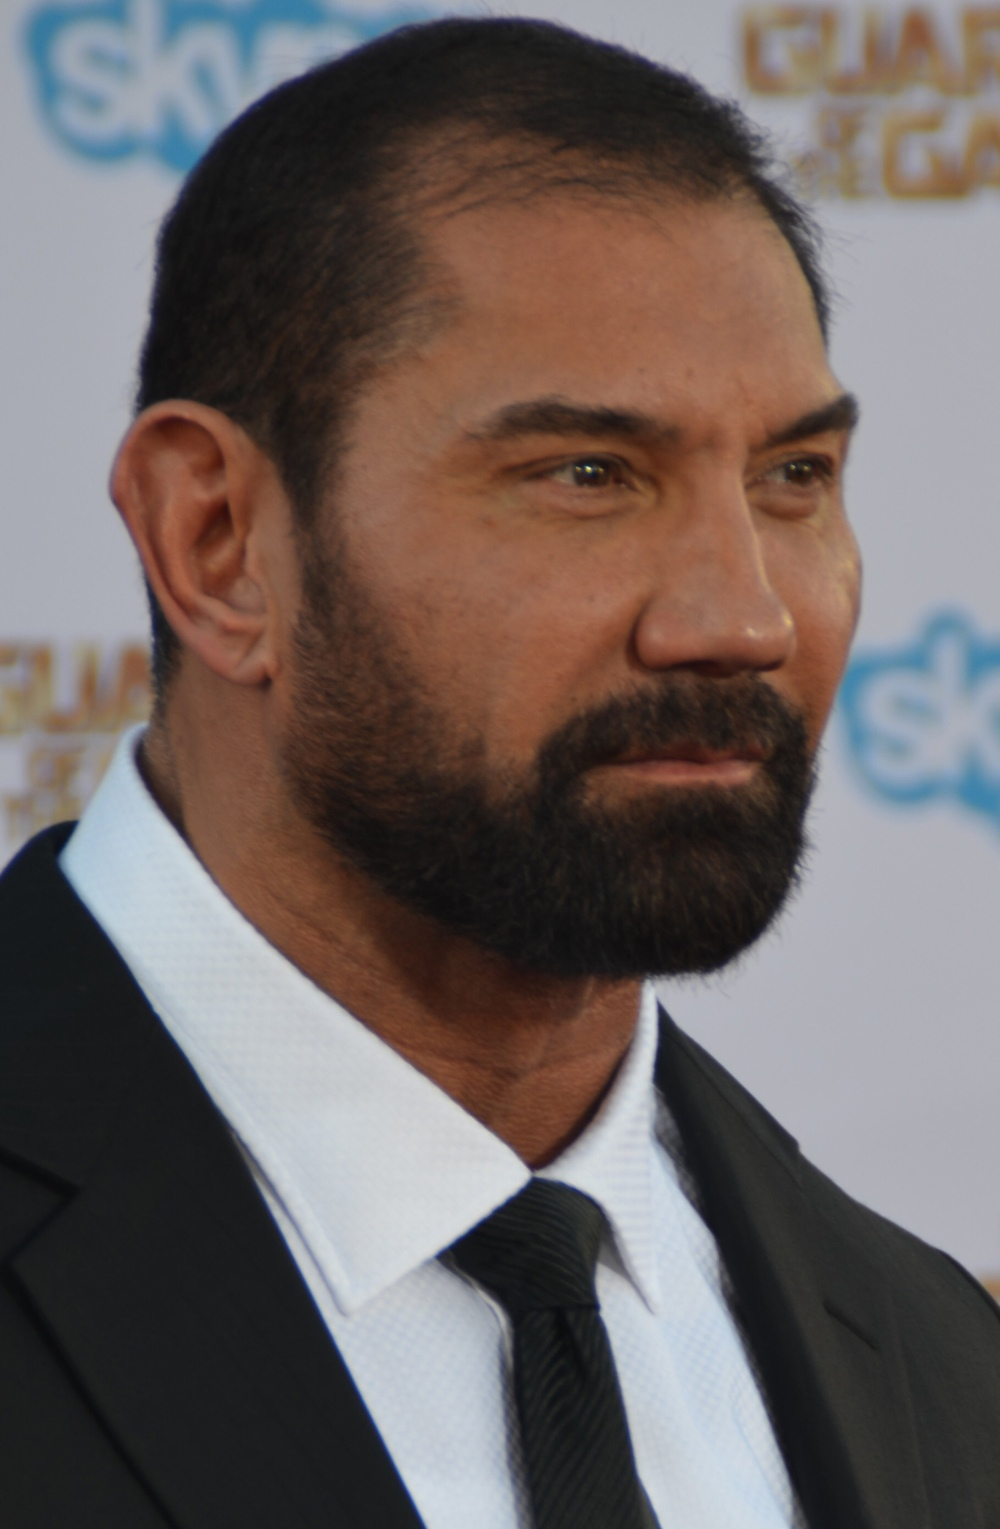 Casting Dune Dave Bautista Initial Reactions The Ardenna Crossing